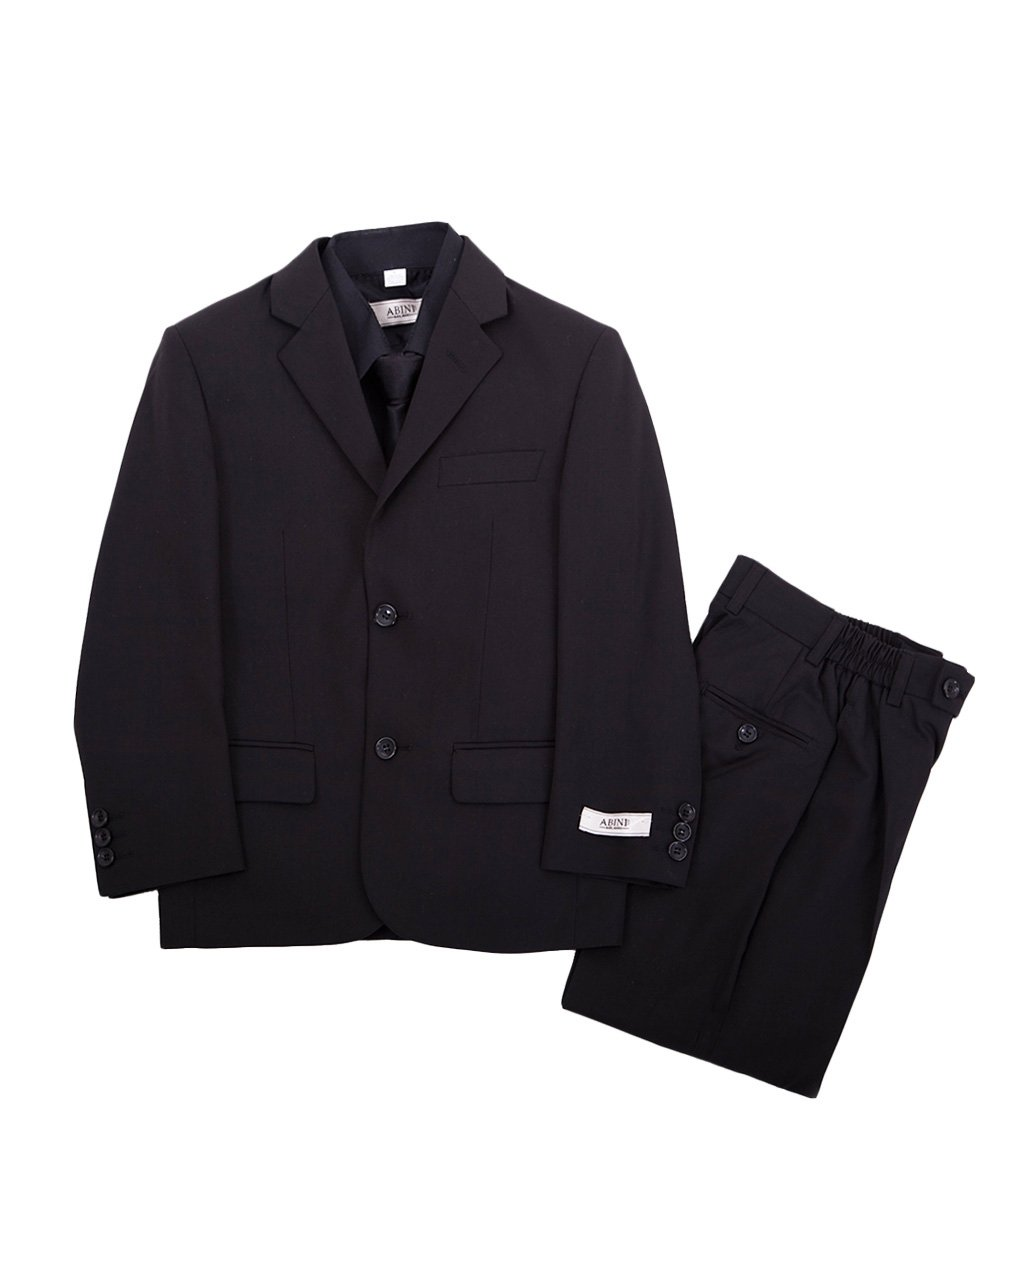 Black Boys Complete Classic Suit Set, Pleated Pants, Vest, Shirt, Tie & Jacket